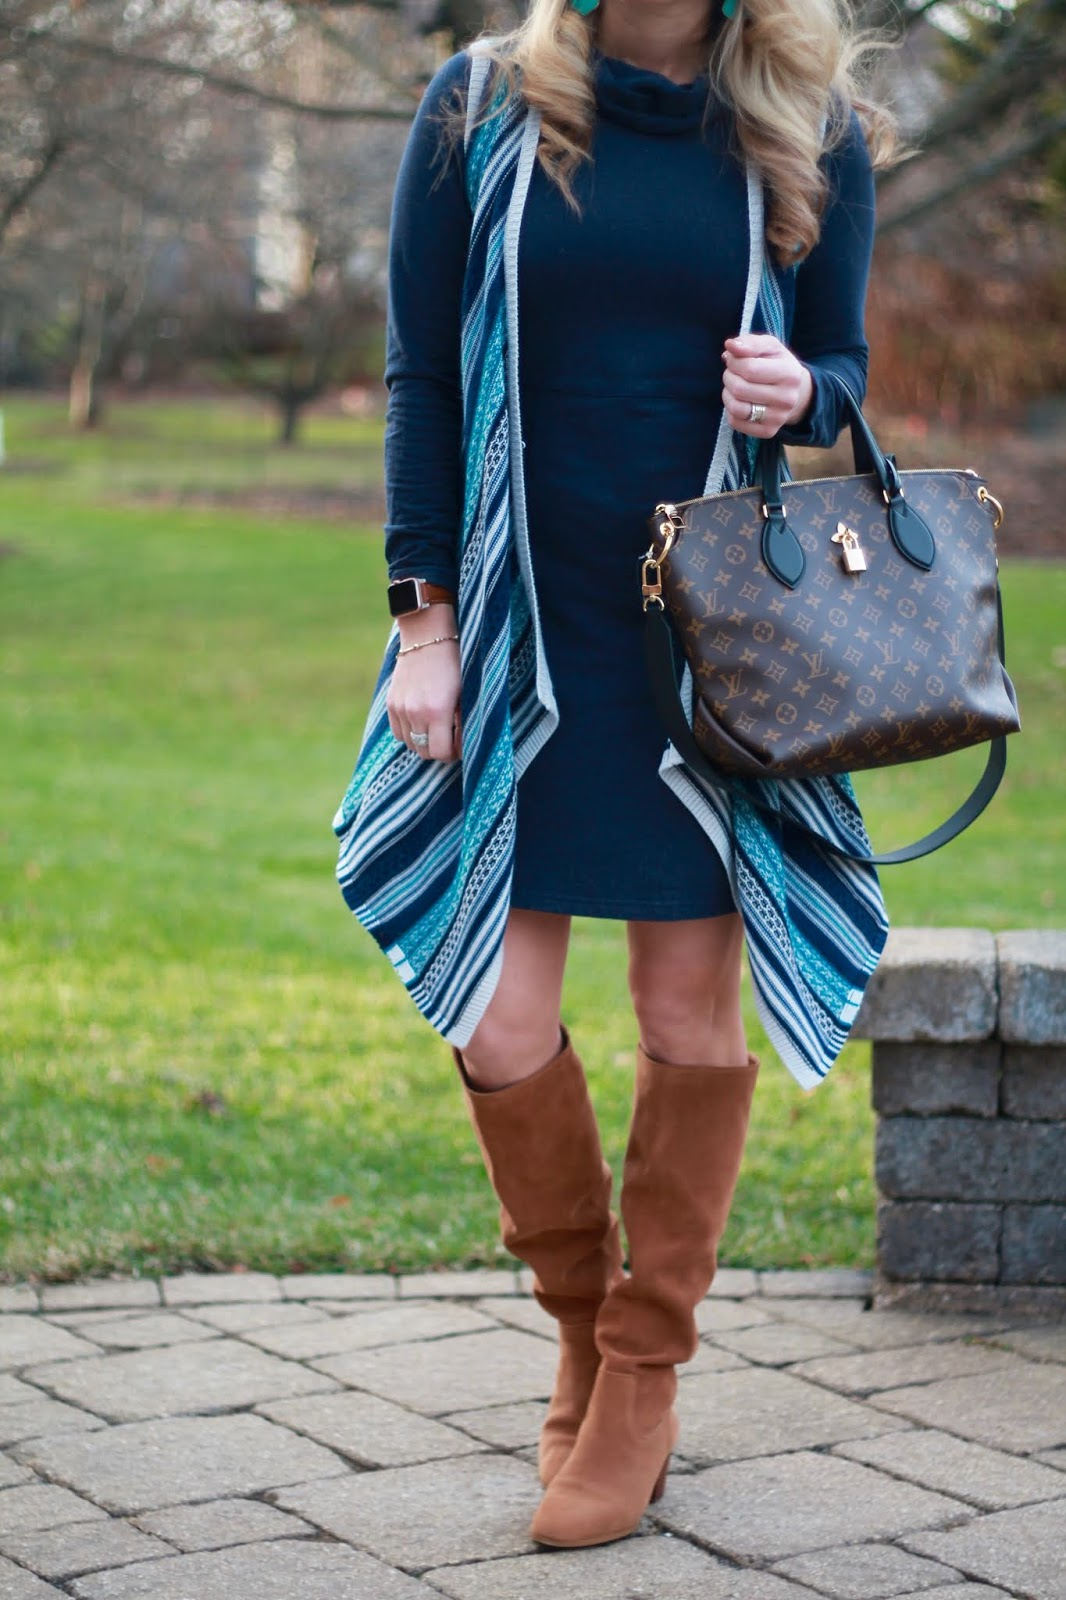 navy cowl neck dress, waterfall aztec vest, cognac suede boots, LV flowered tote, JORD apple watch strap